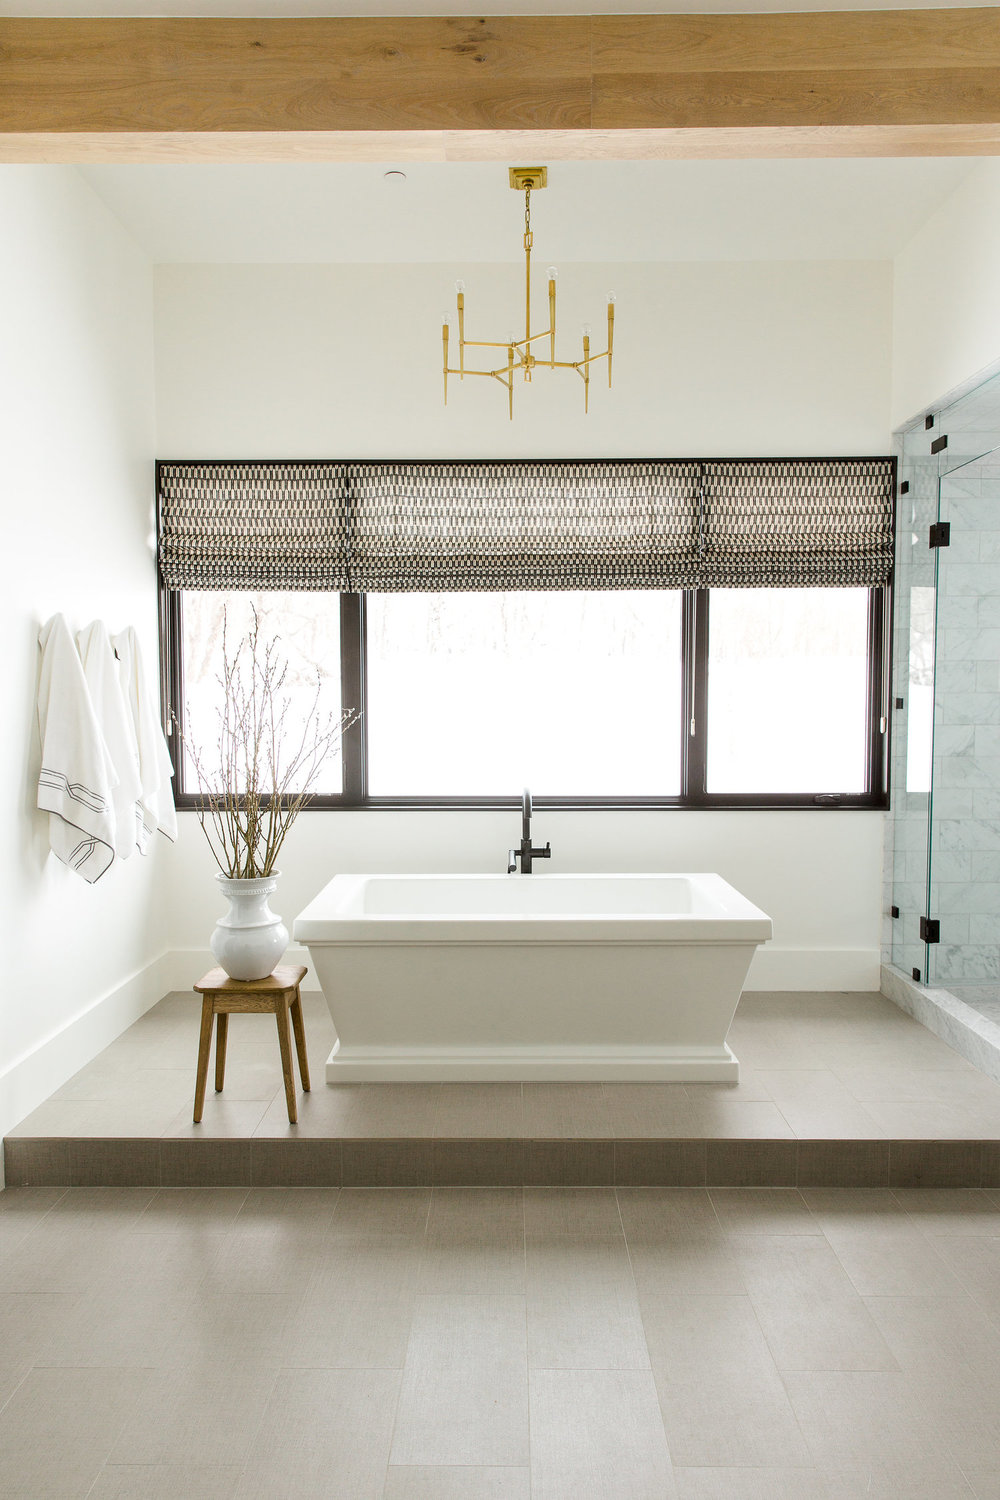 Stand alone porcelain bathtub in front of window